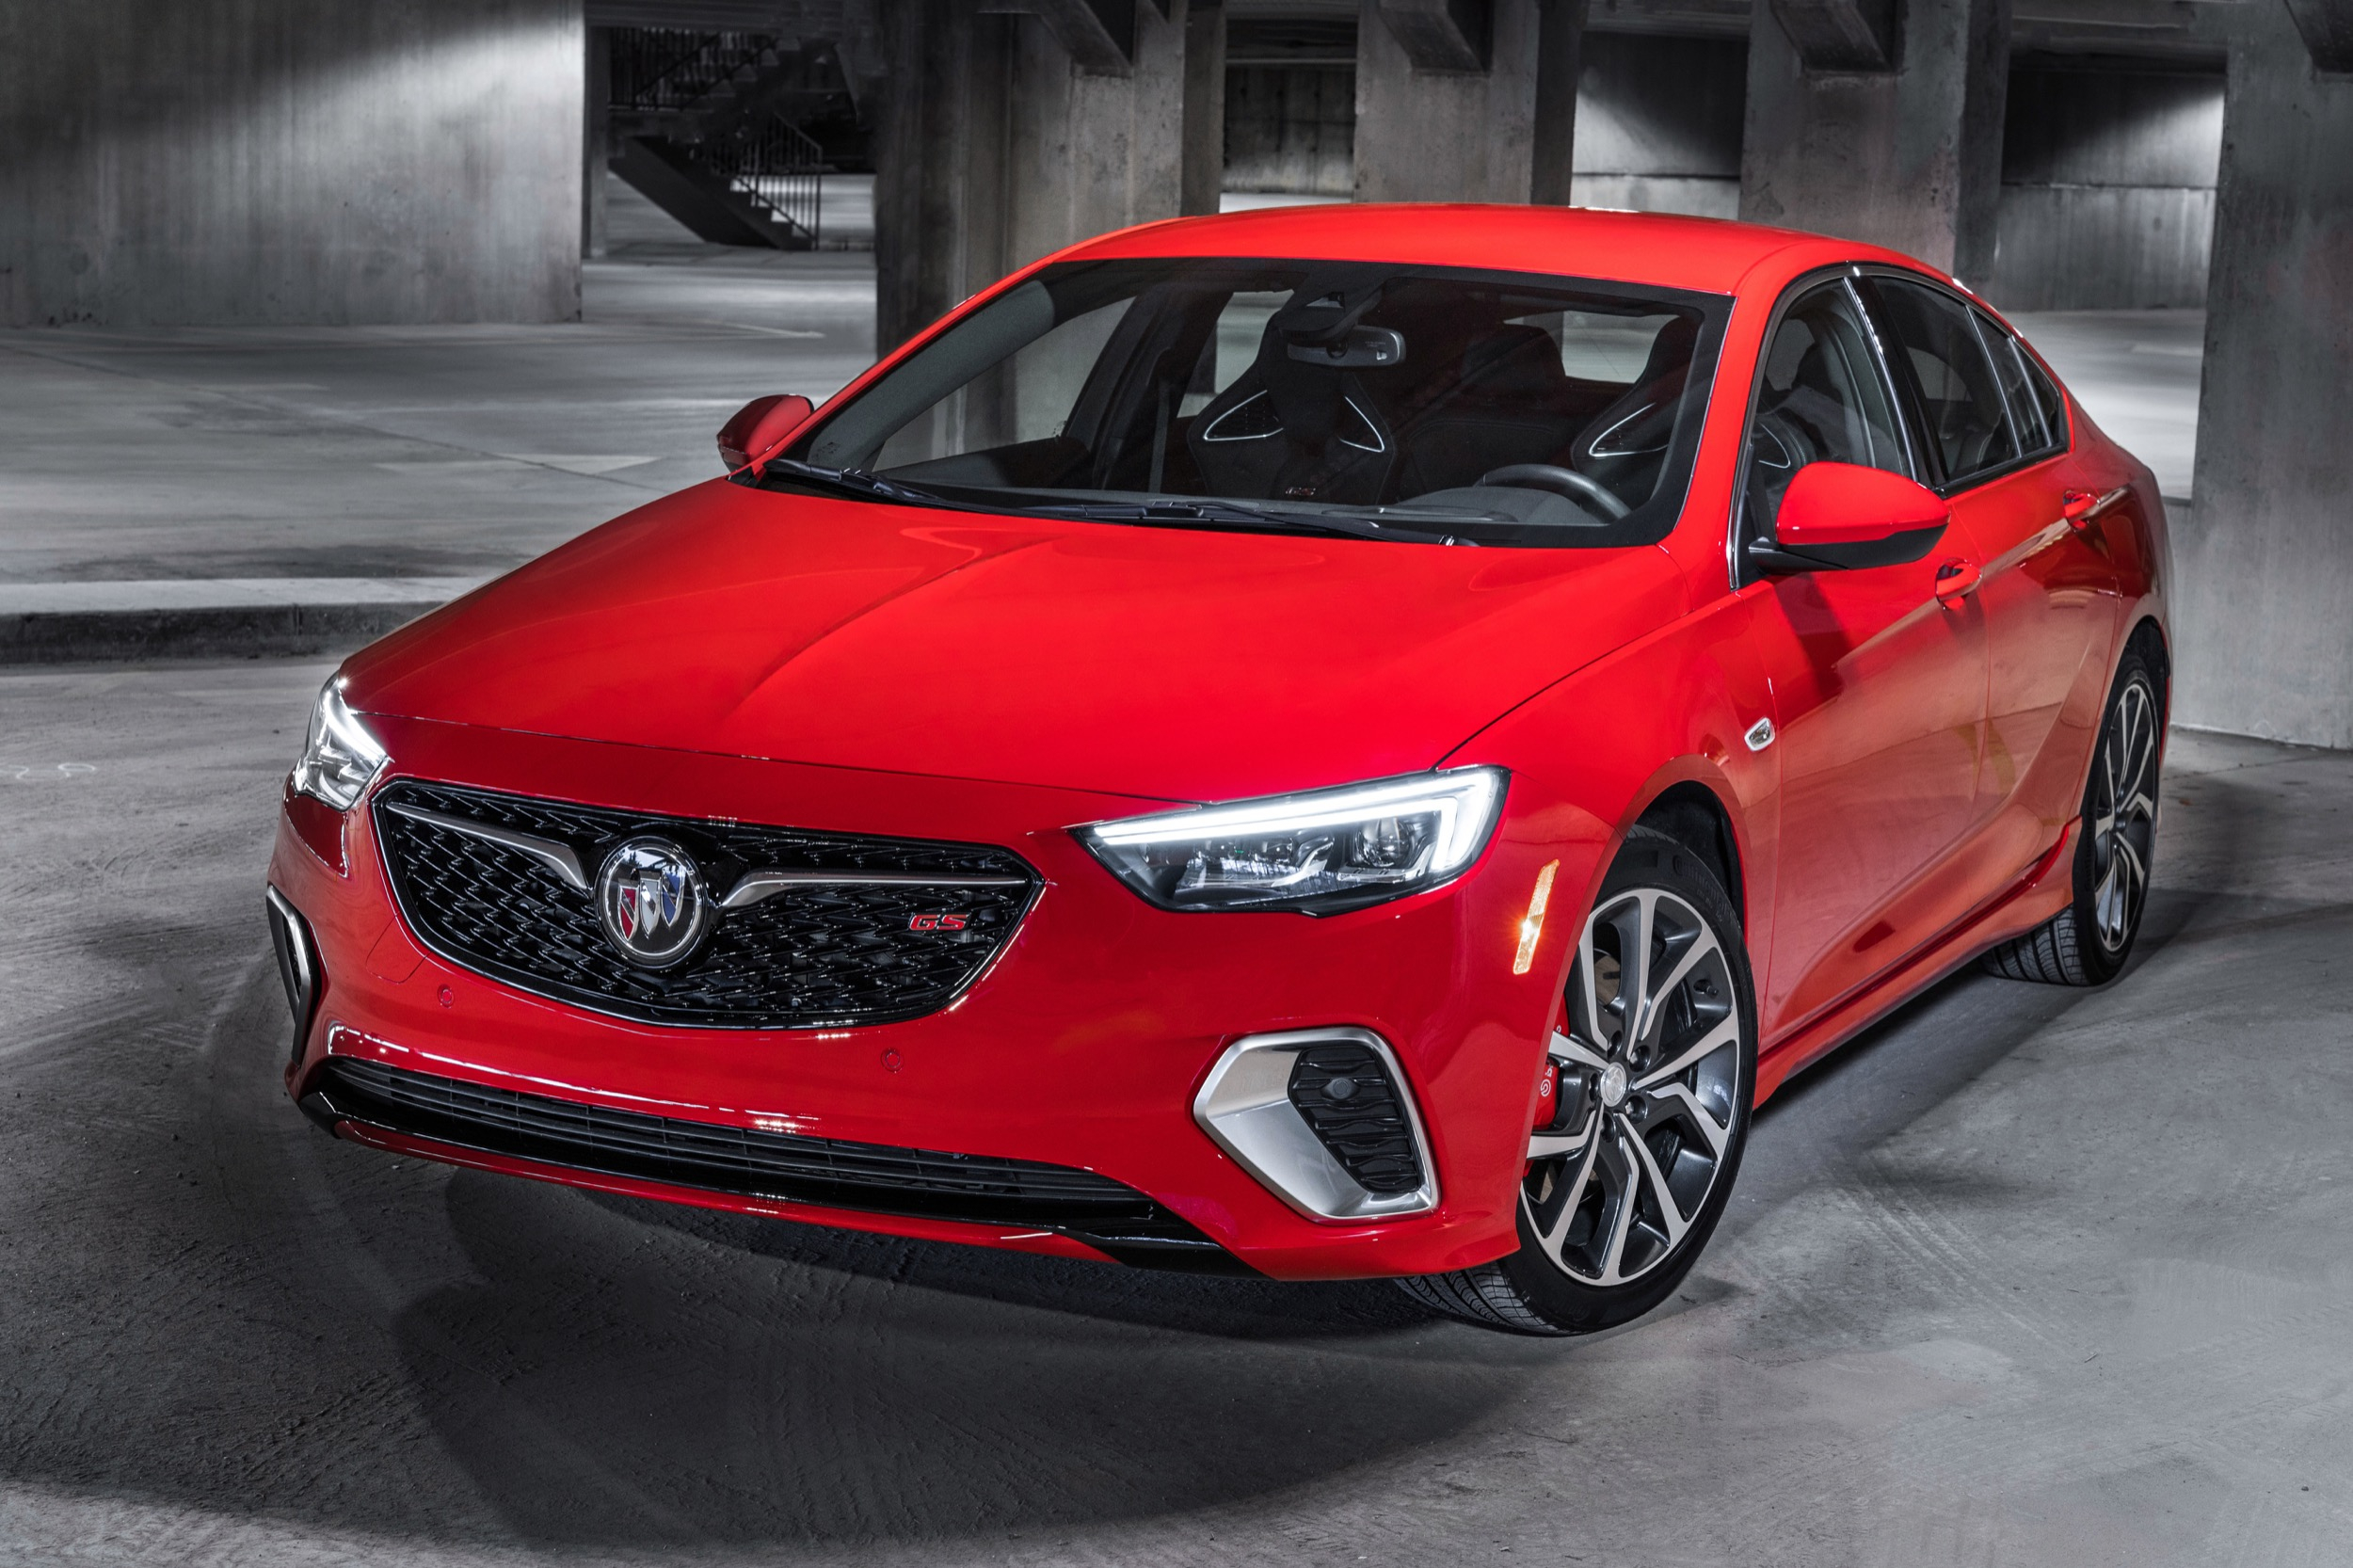 Buick Regal Discount Totals $5,500 June 2020 | Gm Authority 2022 Buick Regal Gs Lease, Engine, Owners Manual